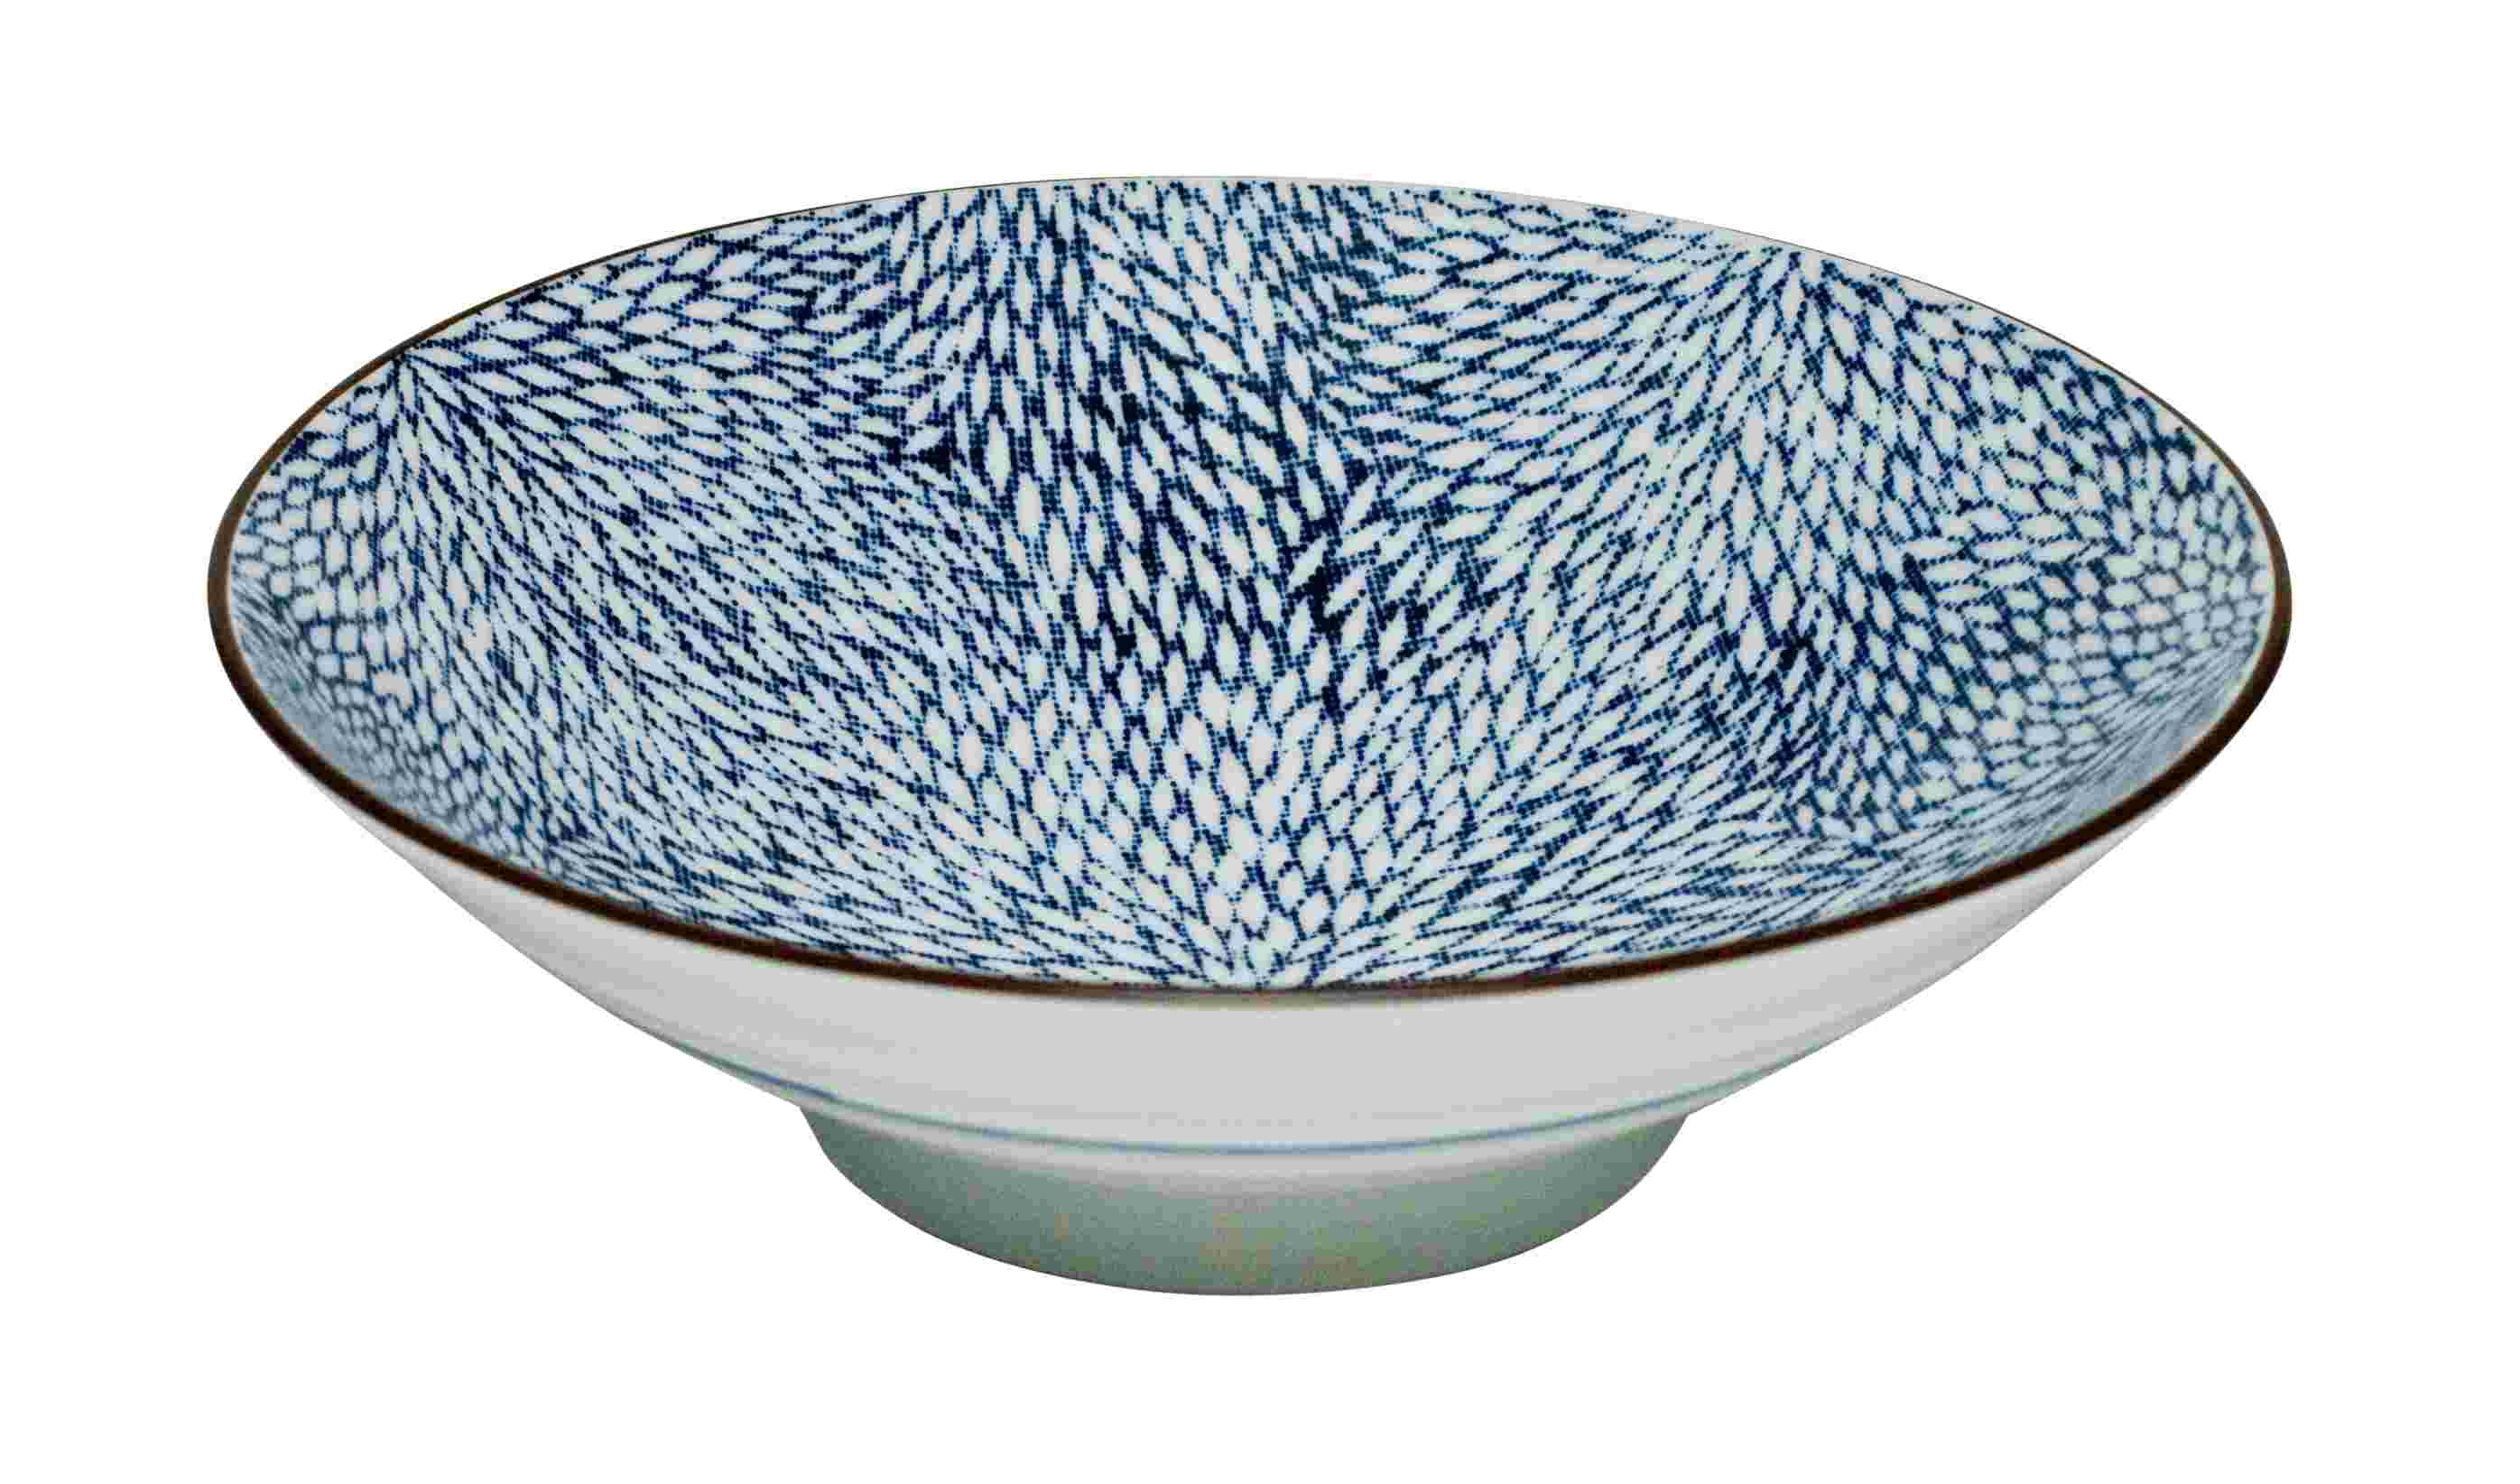 Mujinagiku Large Bowl